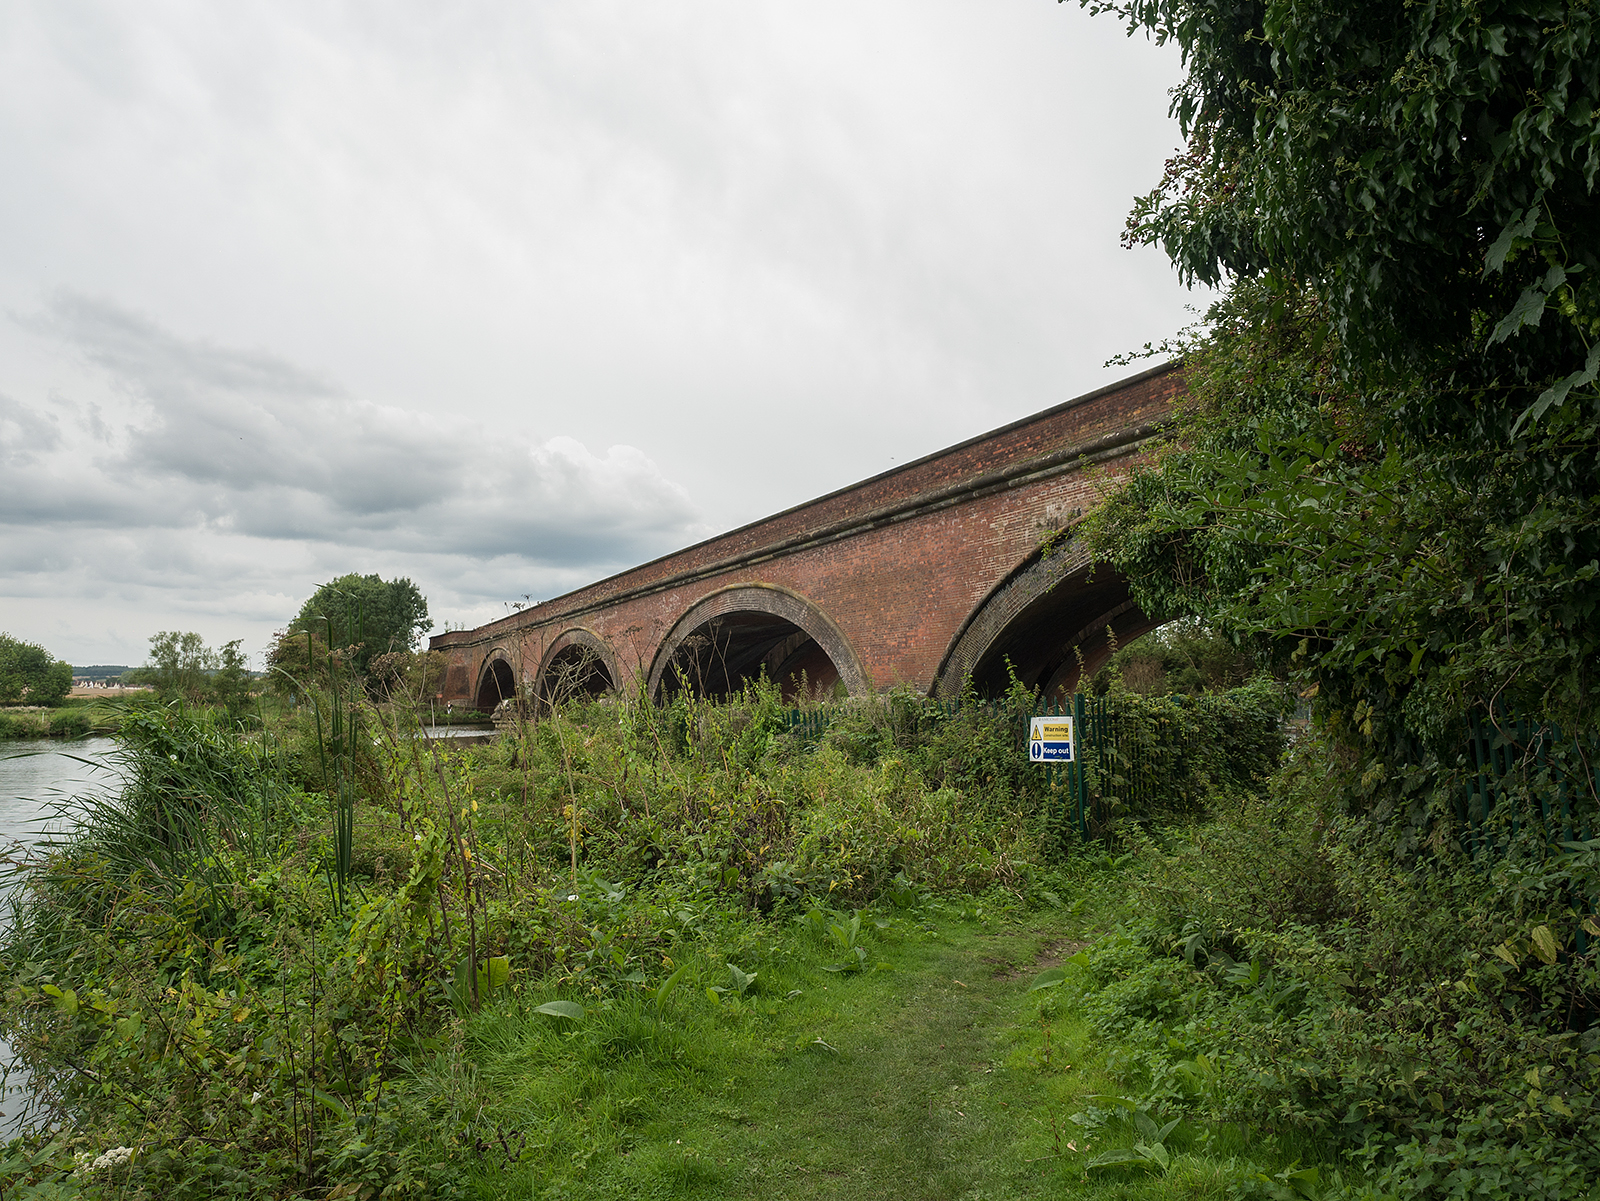 Looking back to the railway bridge